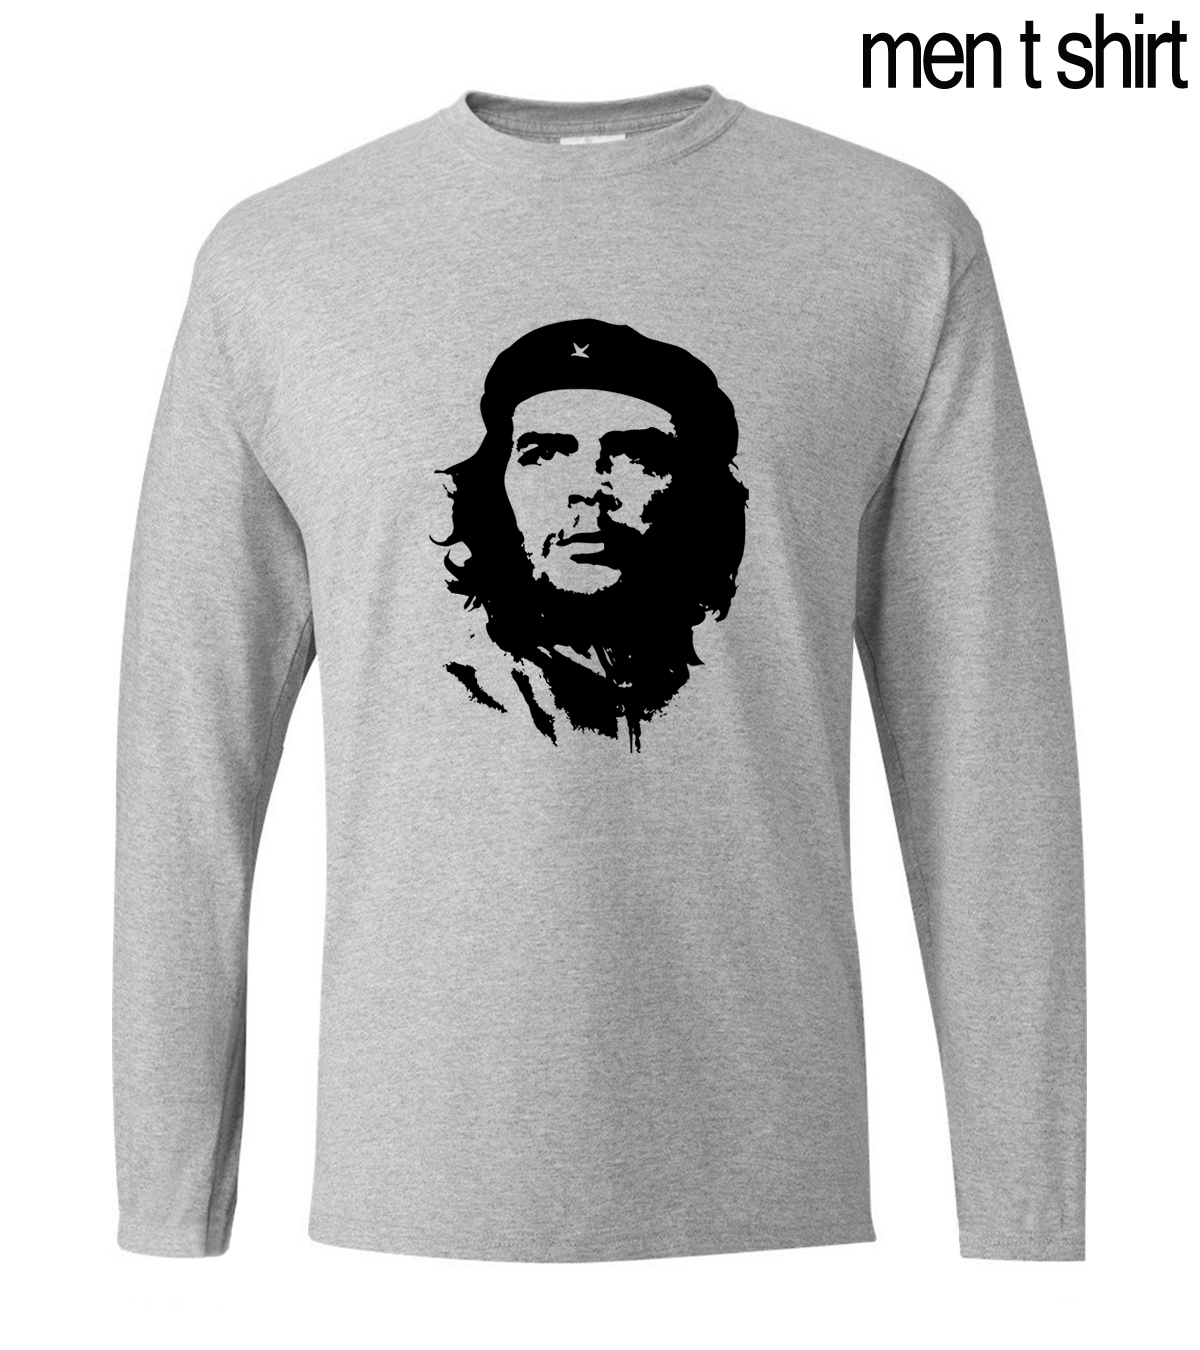 New Arrival Ernesto Guevara Men Tshirt 2019 Autumn Long Sleeve Men's T Shirt 100% Cotton Casual T-Shirt Slim Fit Brand Clothing